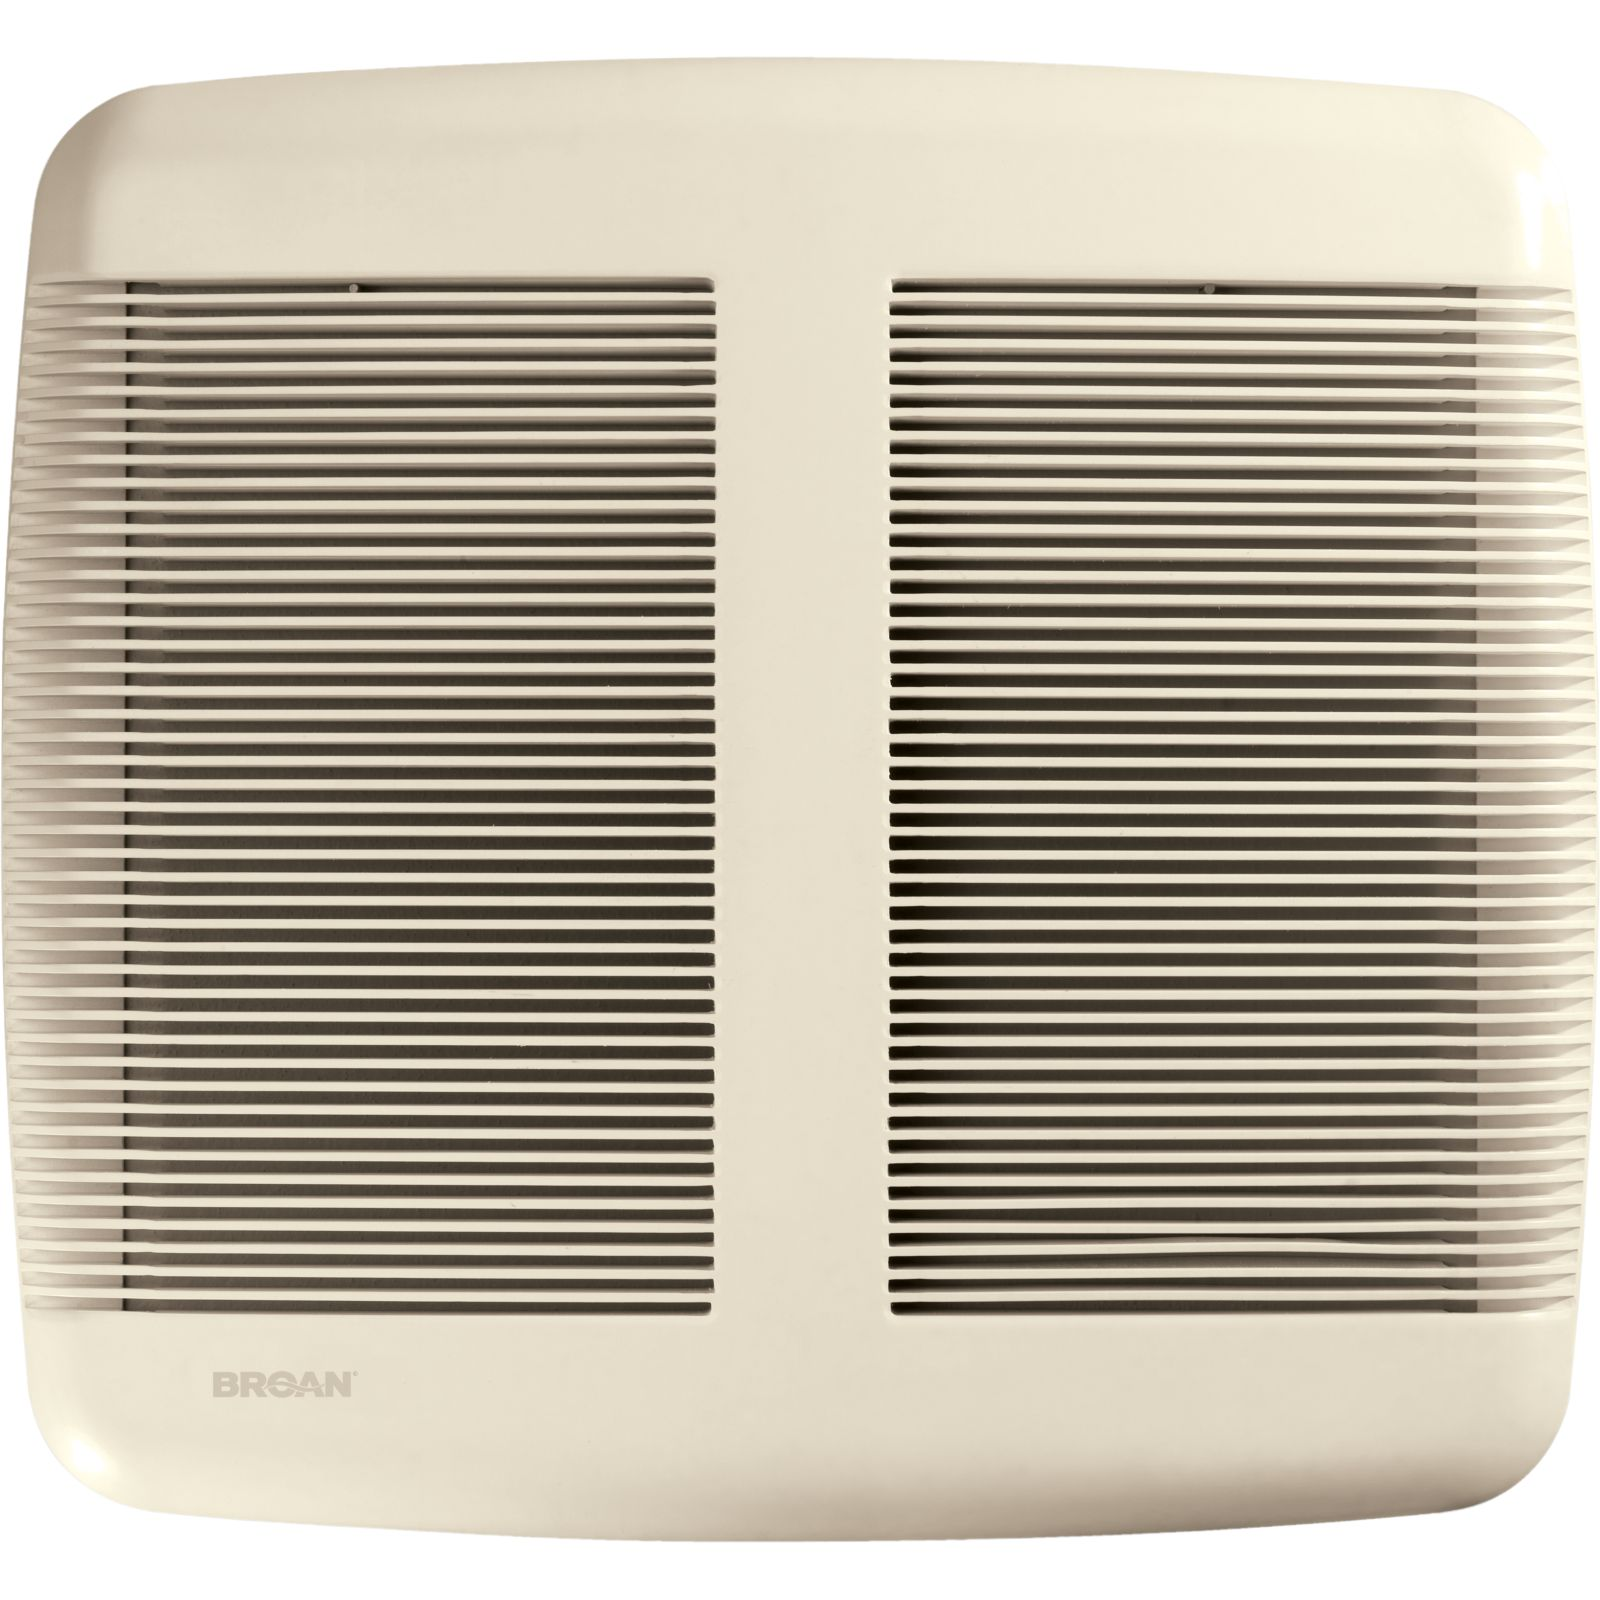 Broan QTRE080 - Very Quiet Bath Fan, White Grille, 80 CFM. ENERGY STAR Fan